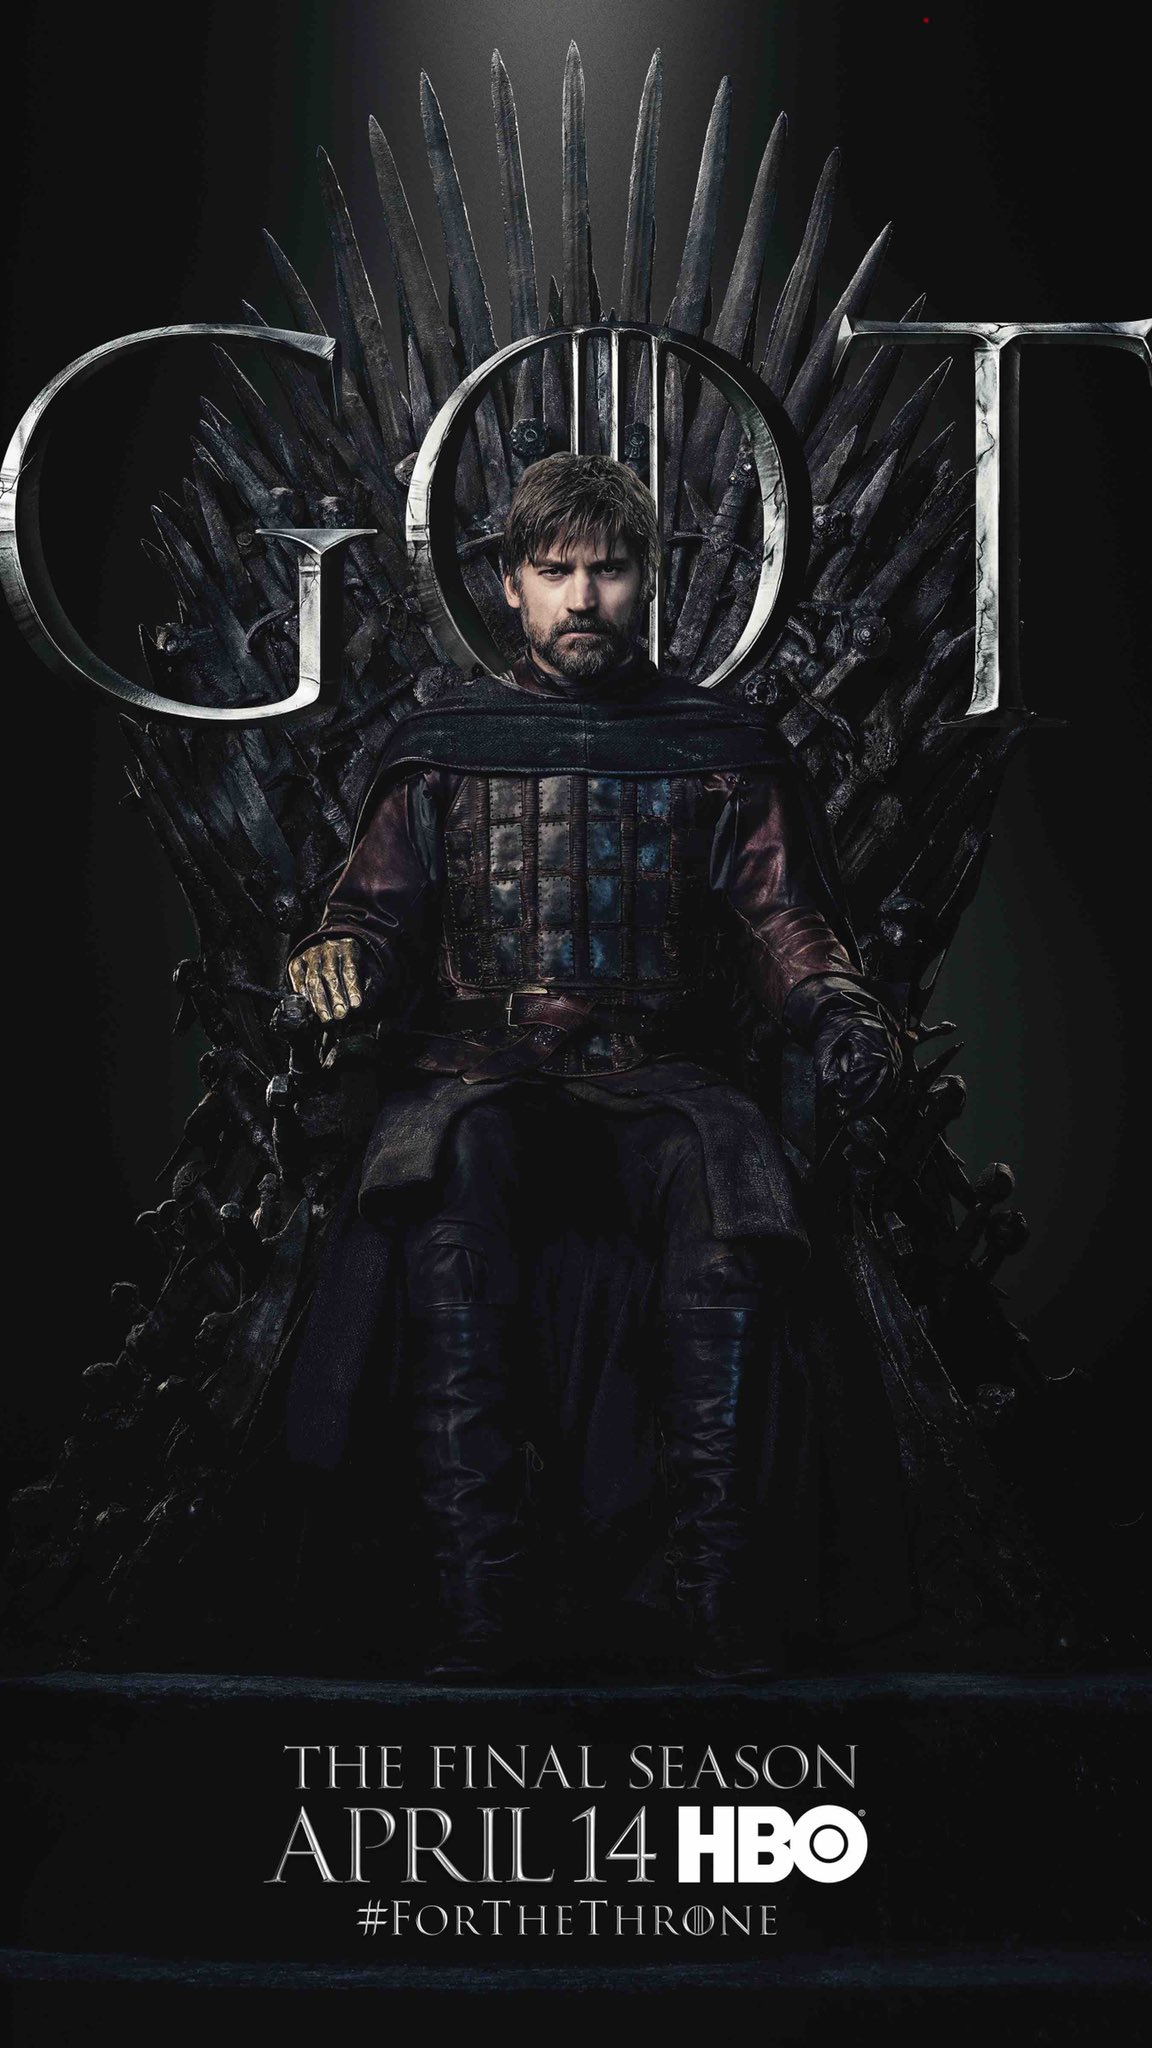 Iron Throne Poster - Jaime Lannister